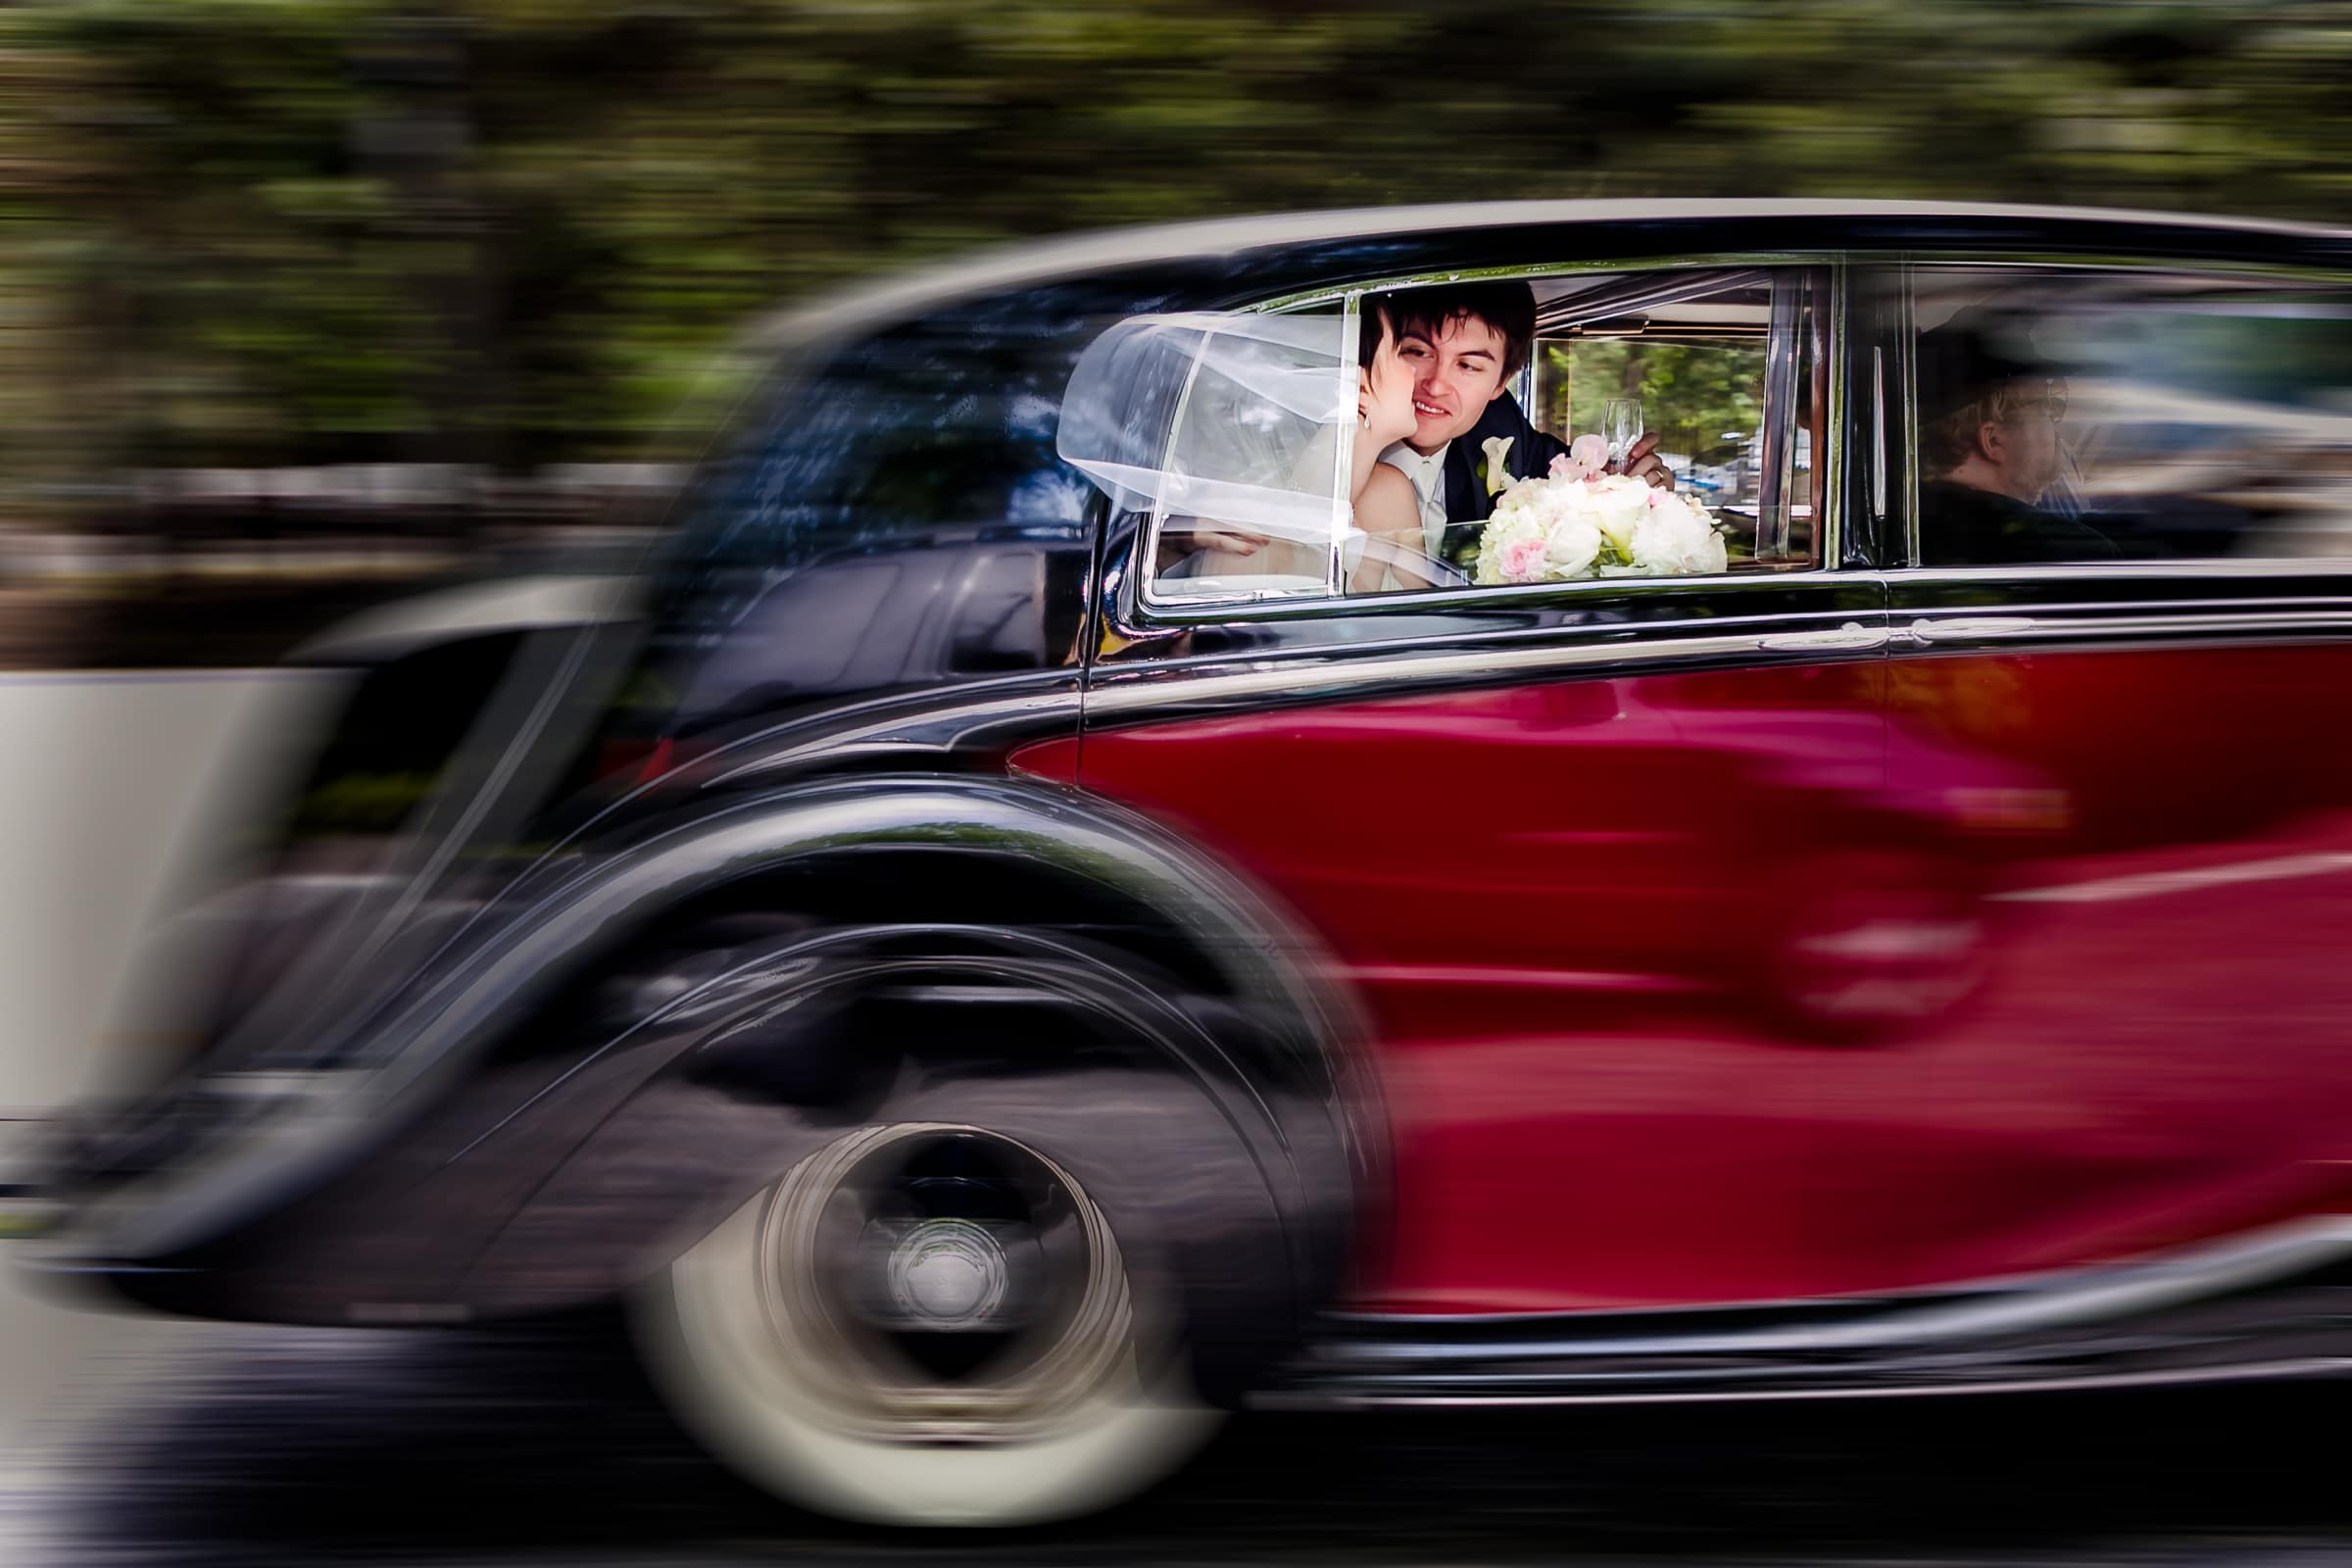 A fun and exciting photo of bride and groom riding in a limousine car heading to their Waverley Country Club wedding